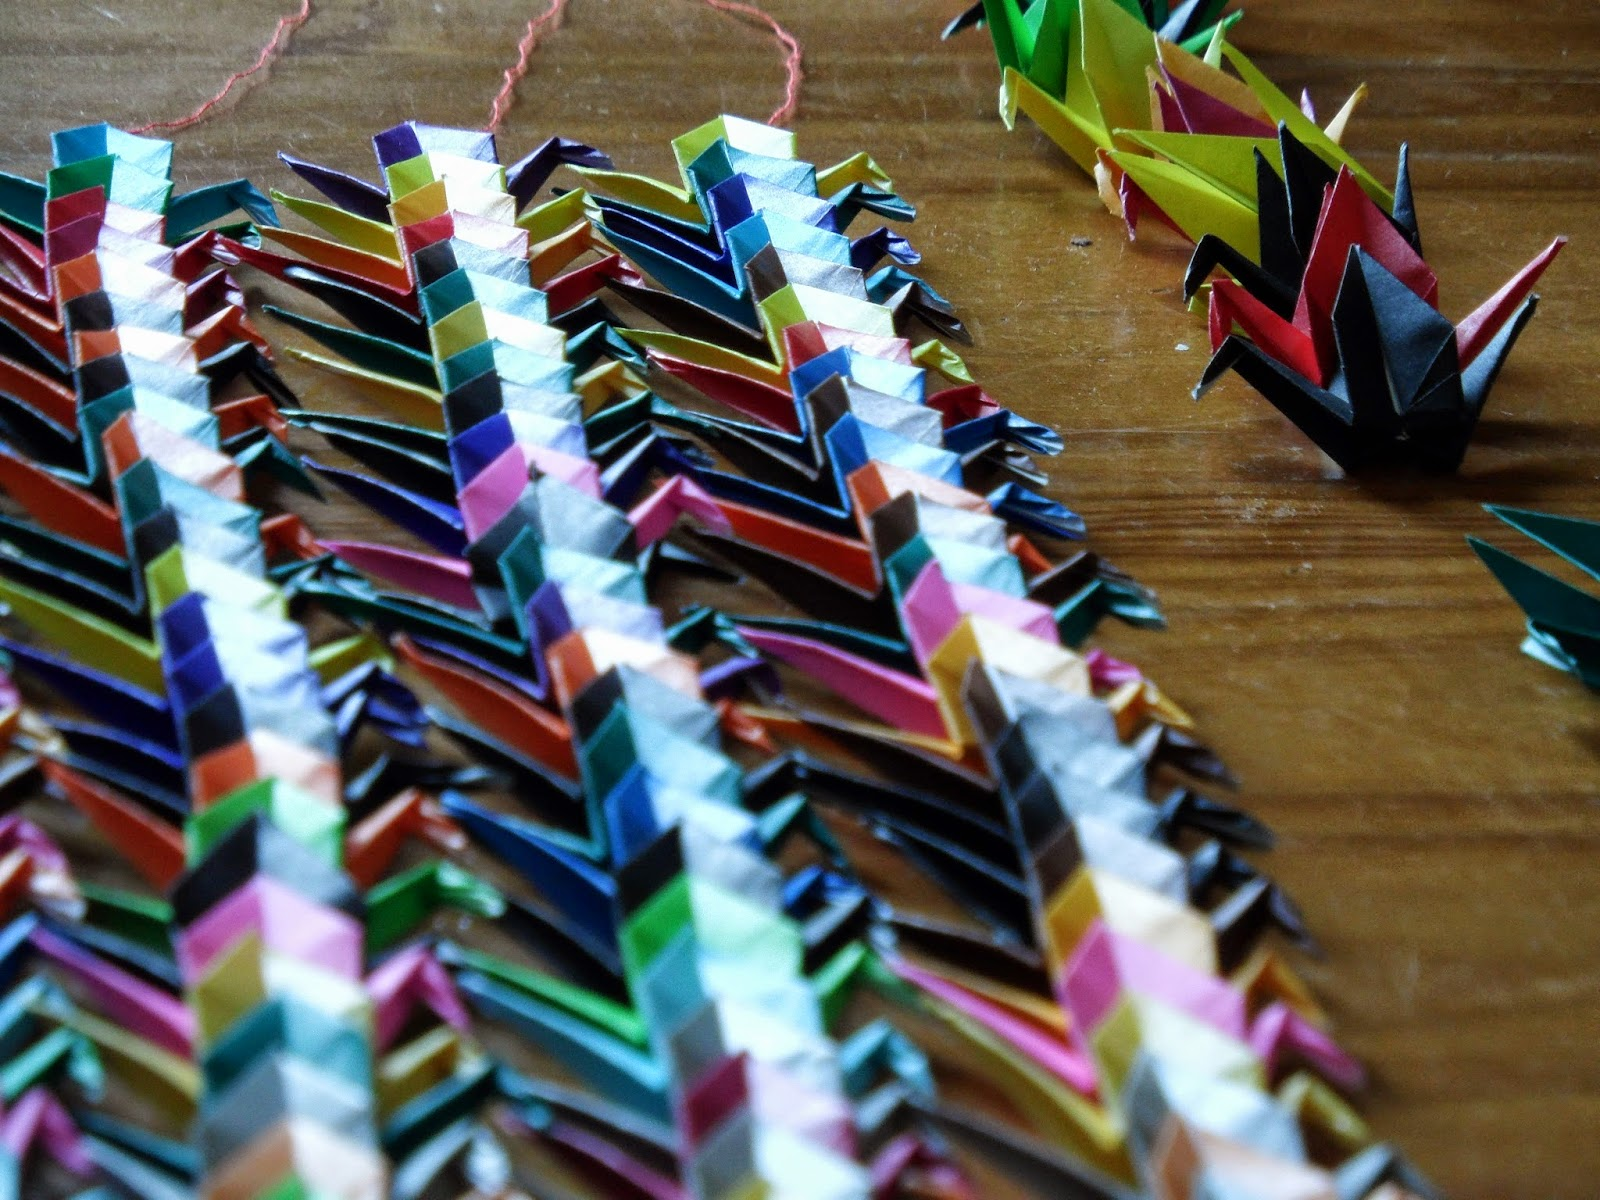 Senbazuru 1000 origami cranes lined up